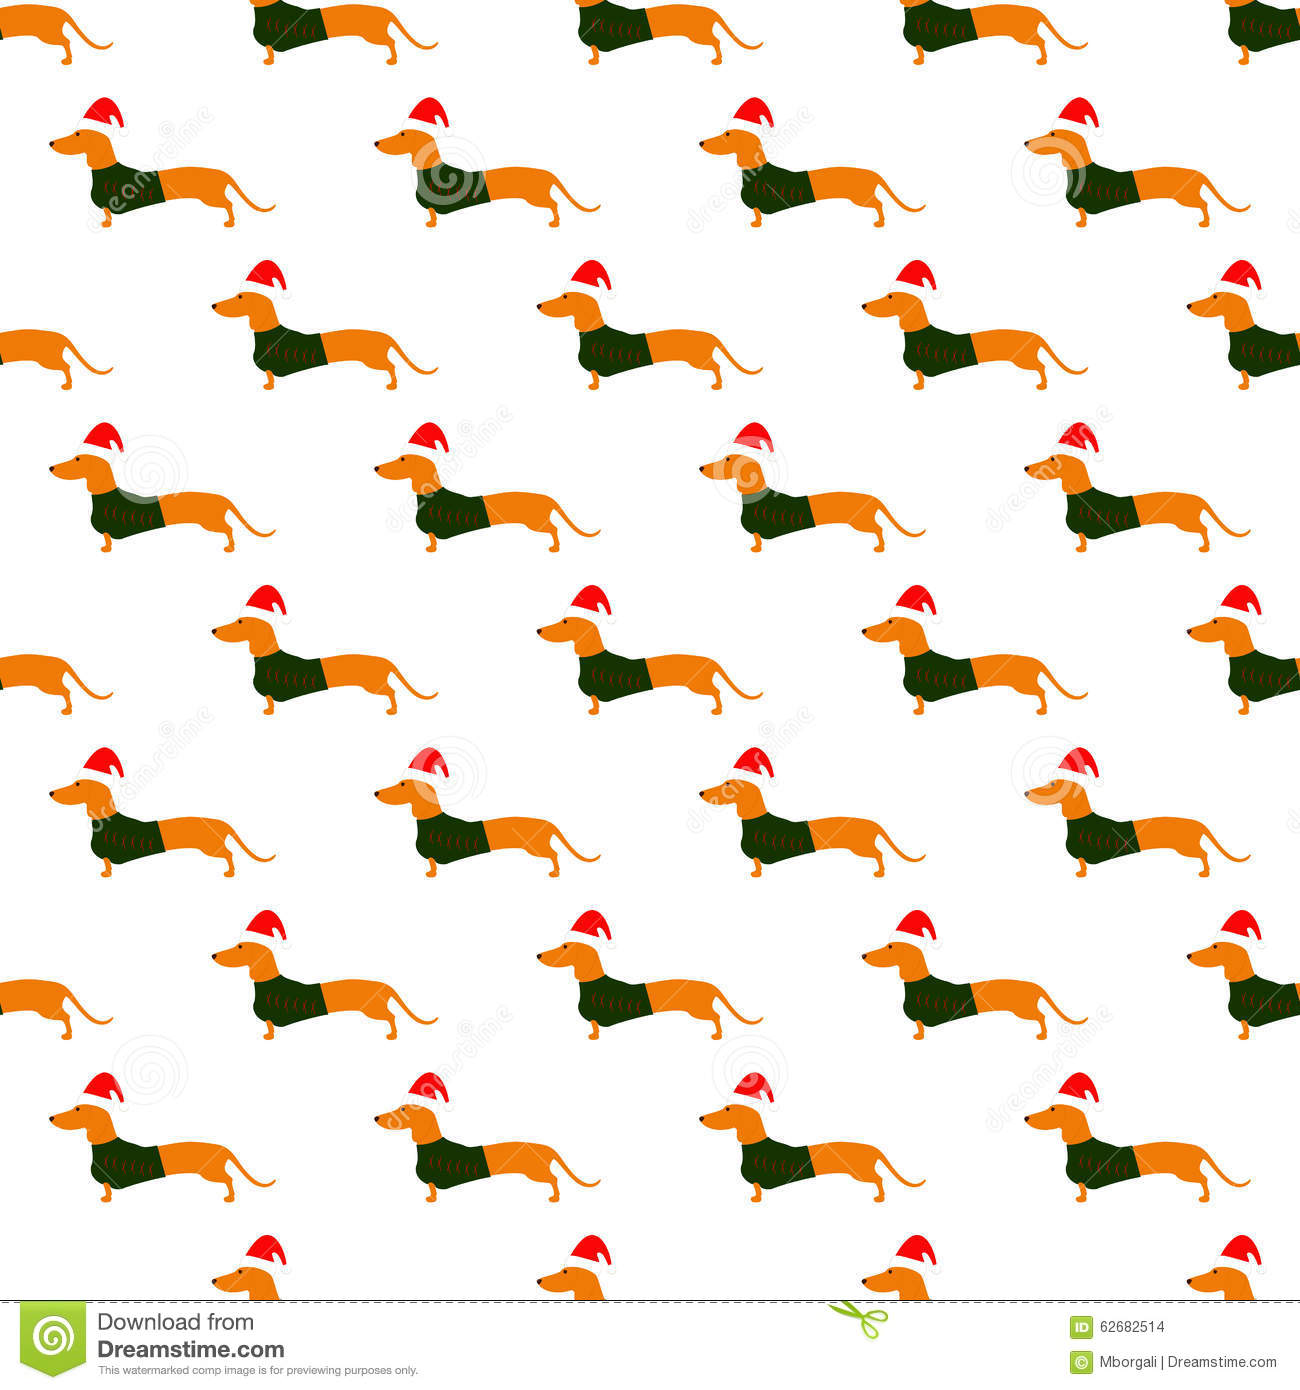 Cute Dachshund Wallpaper Pattern With Dachshund In Christmas Suit Cartoon Vector